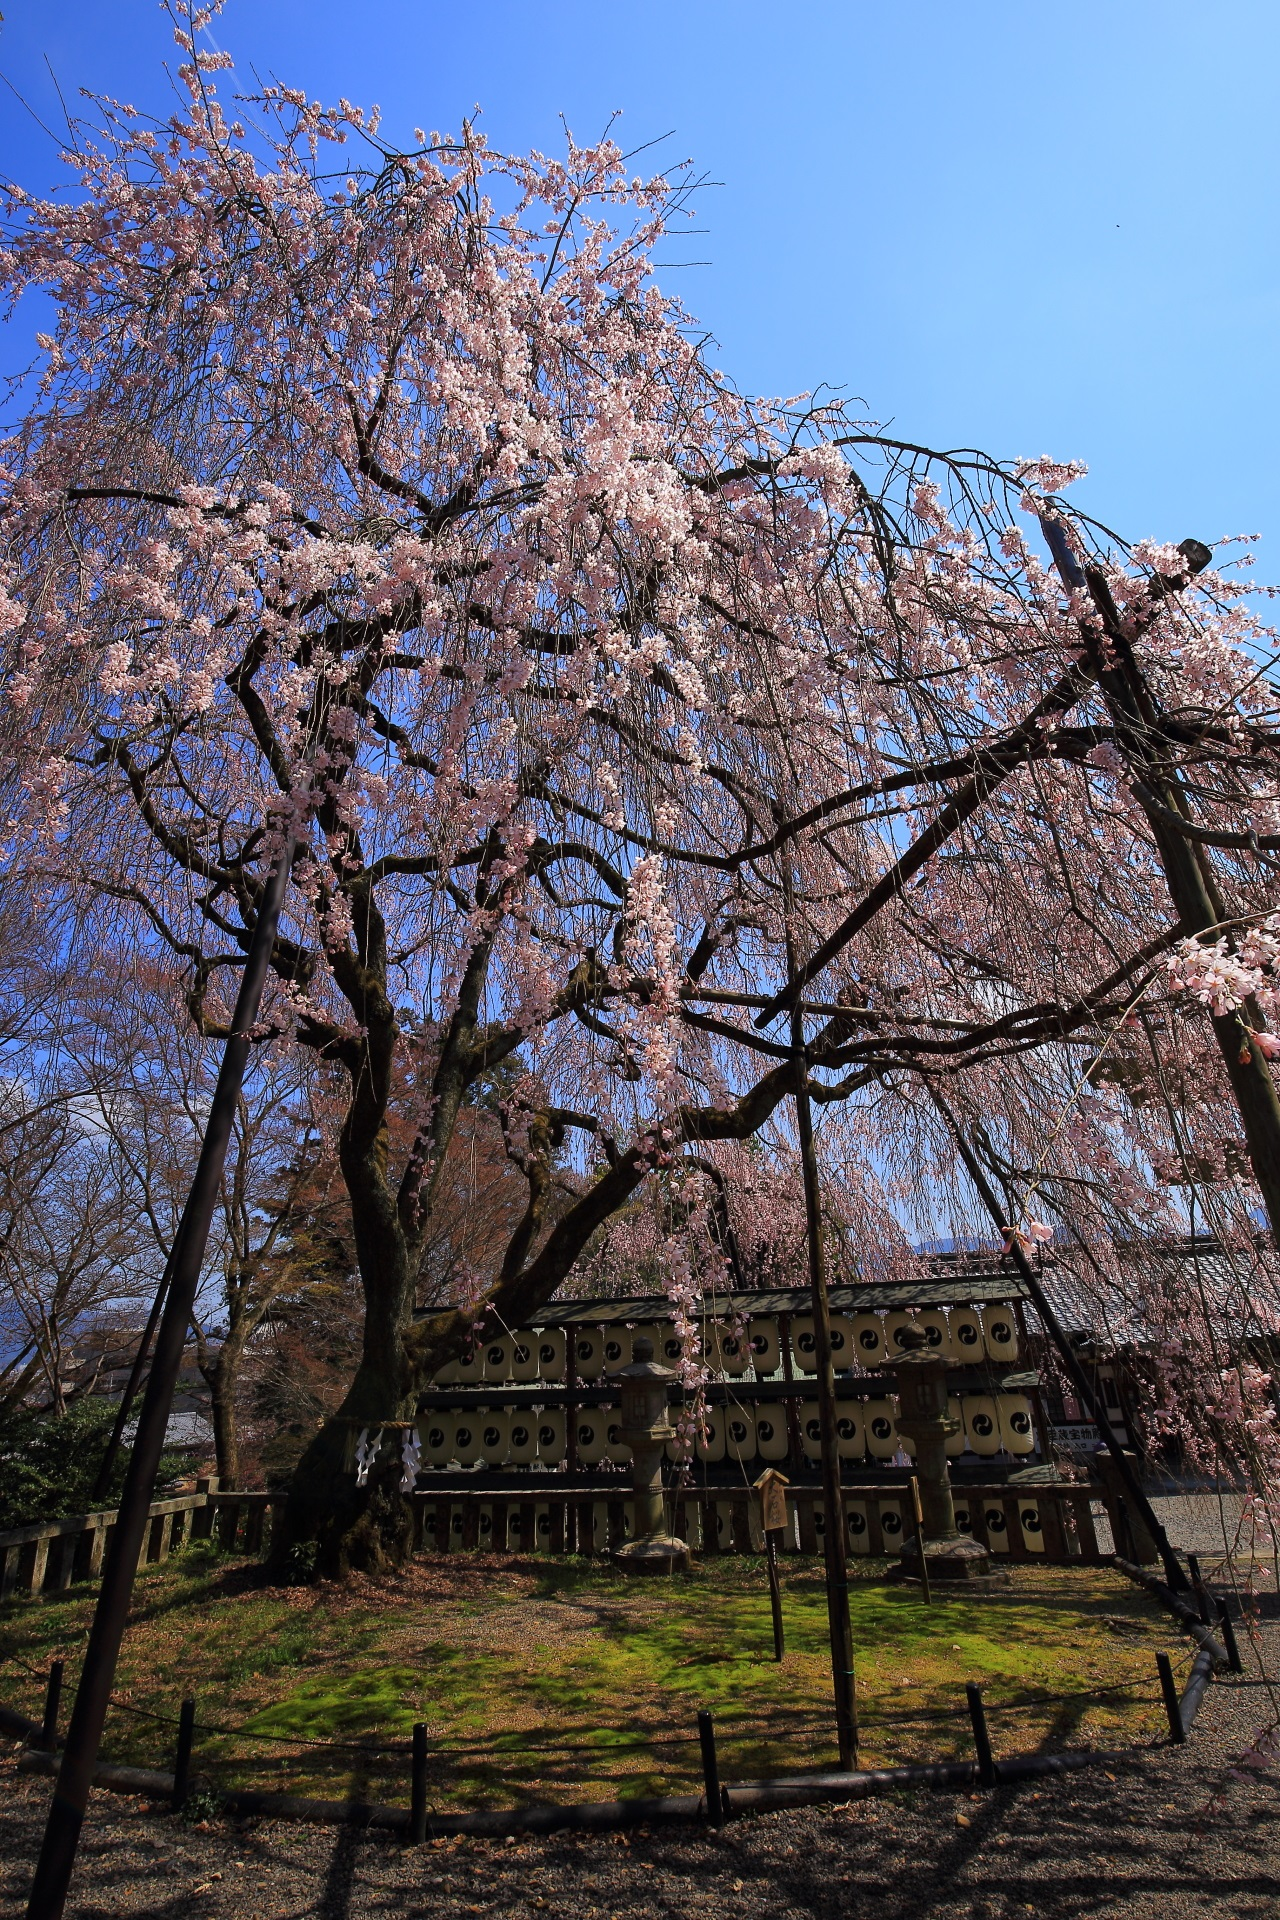 Kyoto Oishi Jinja shrine weeping cherry tree